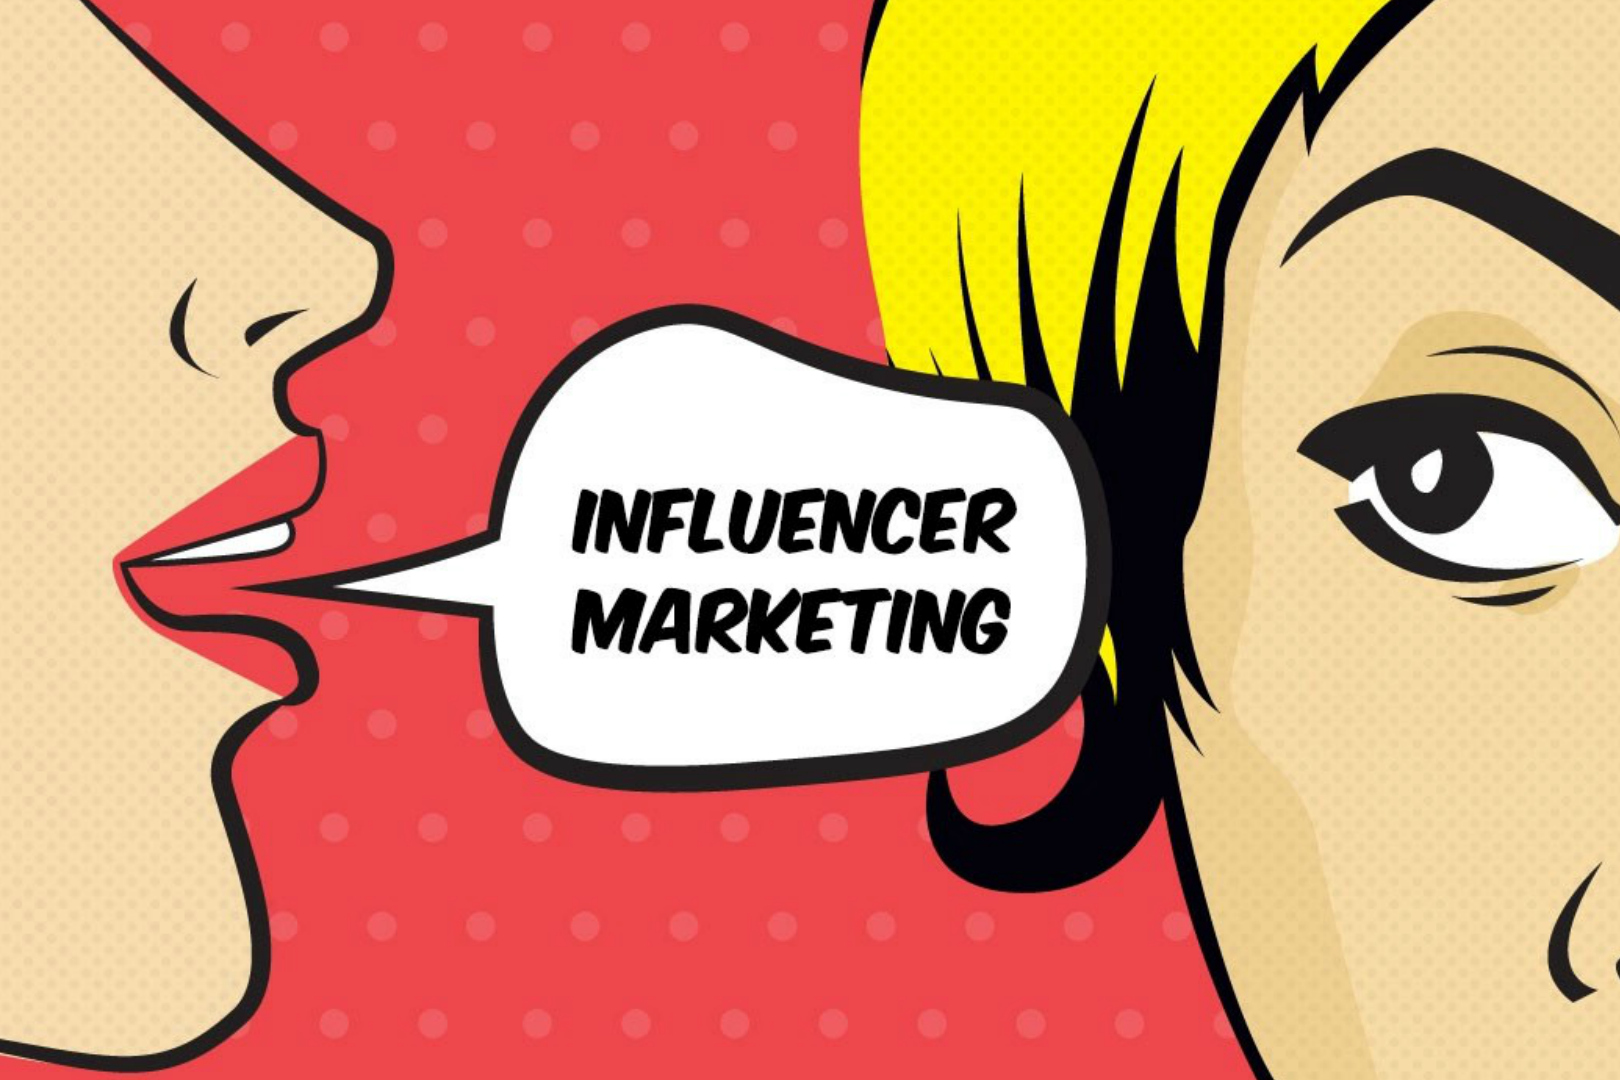 Influencer marketing. What is it